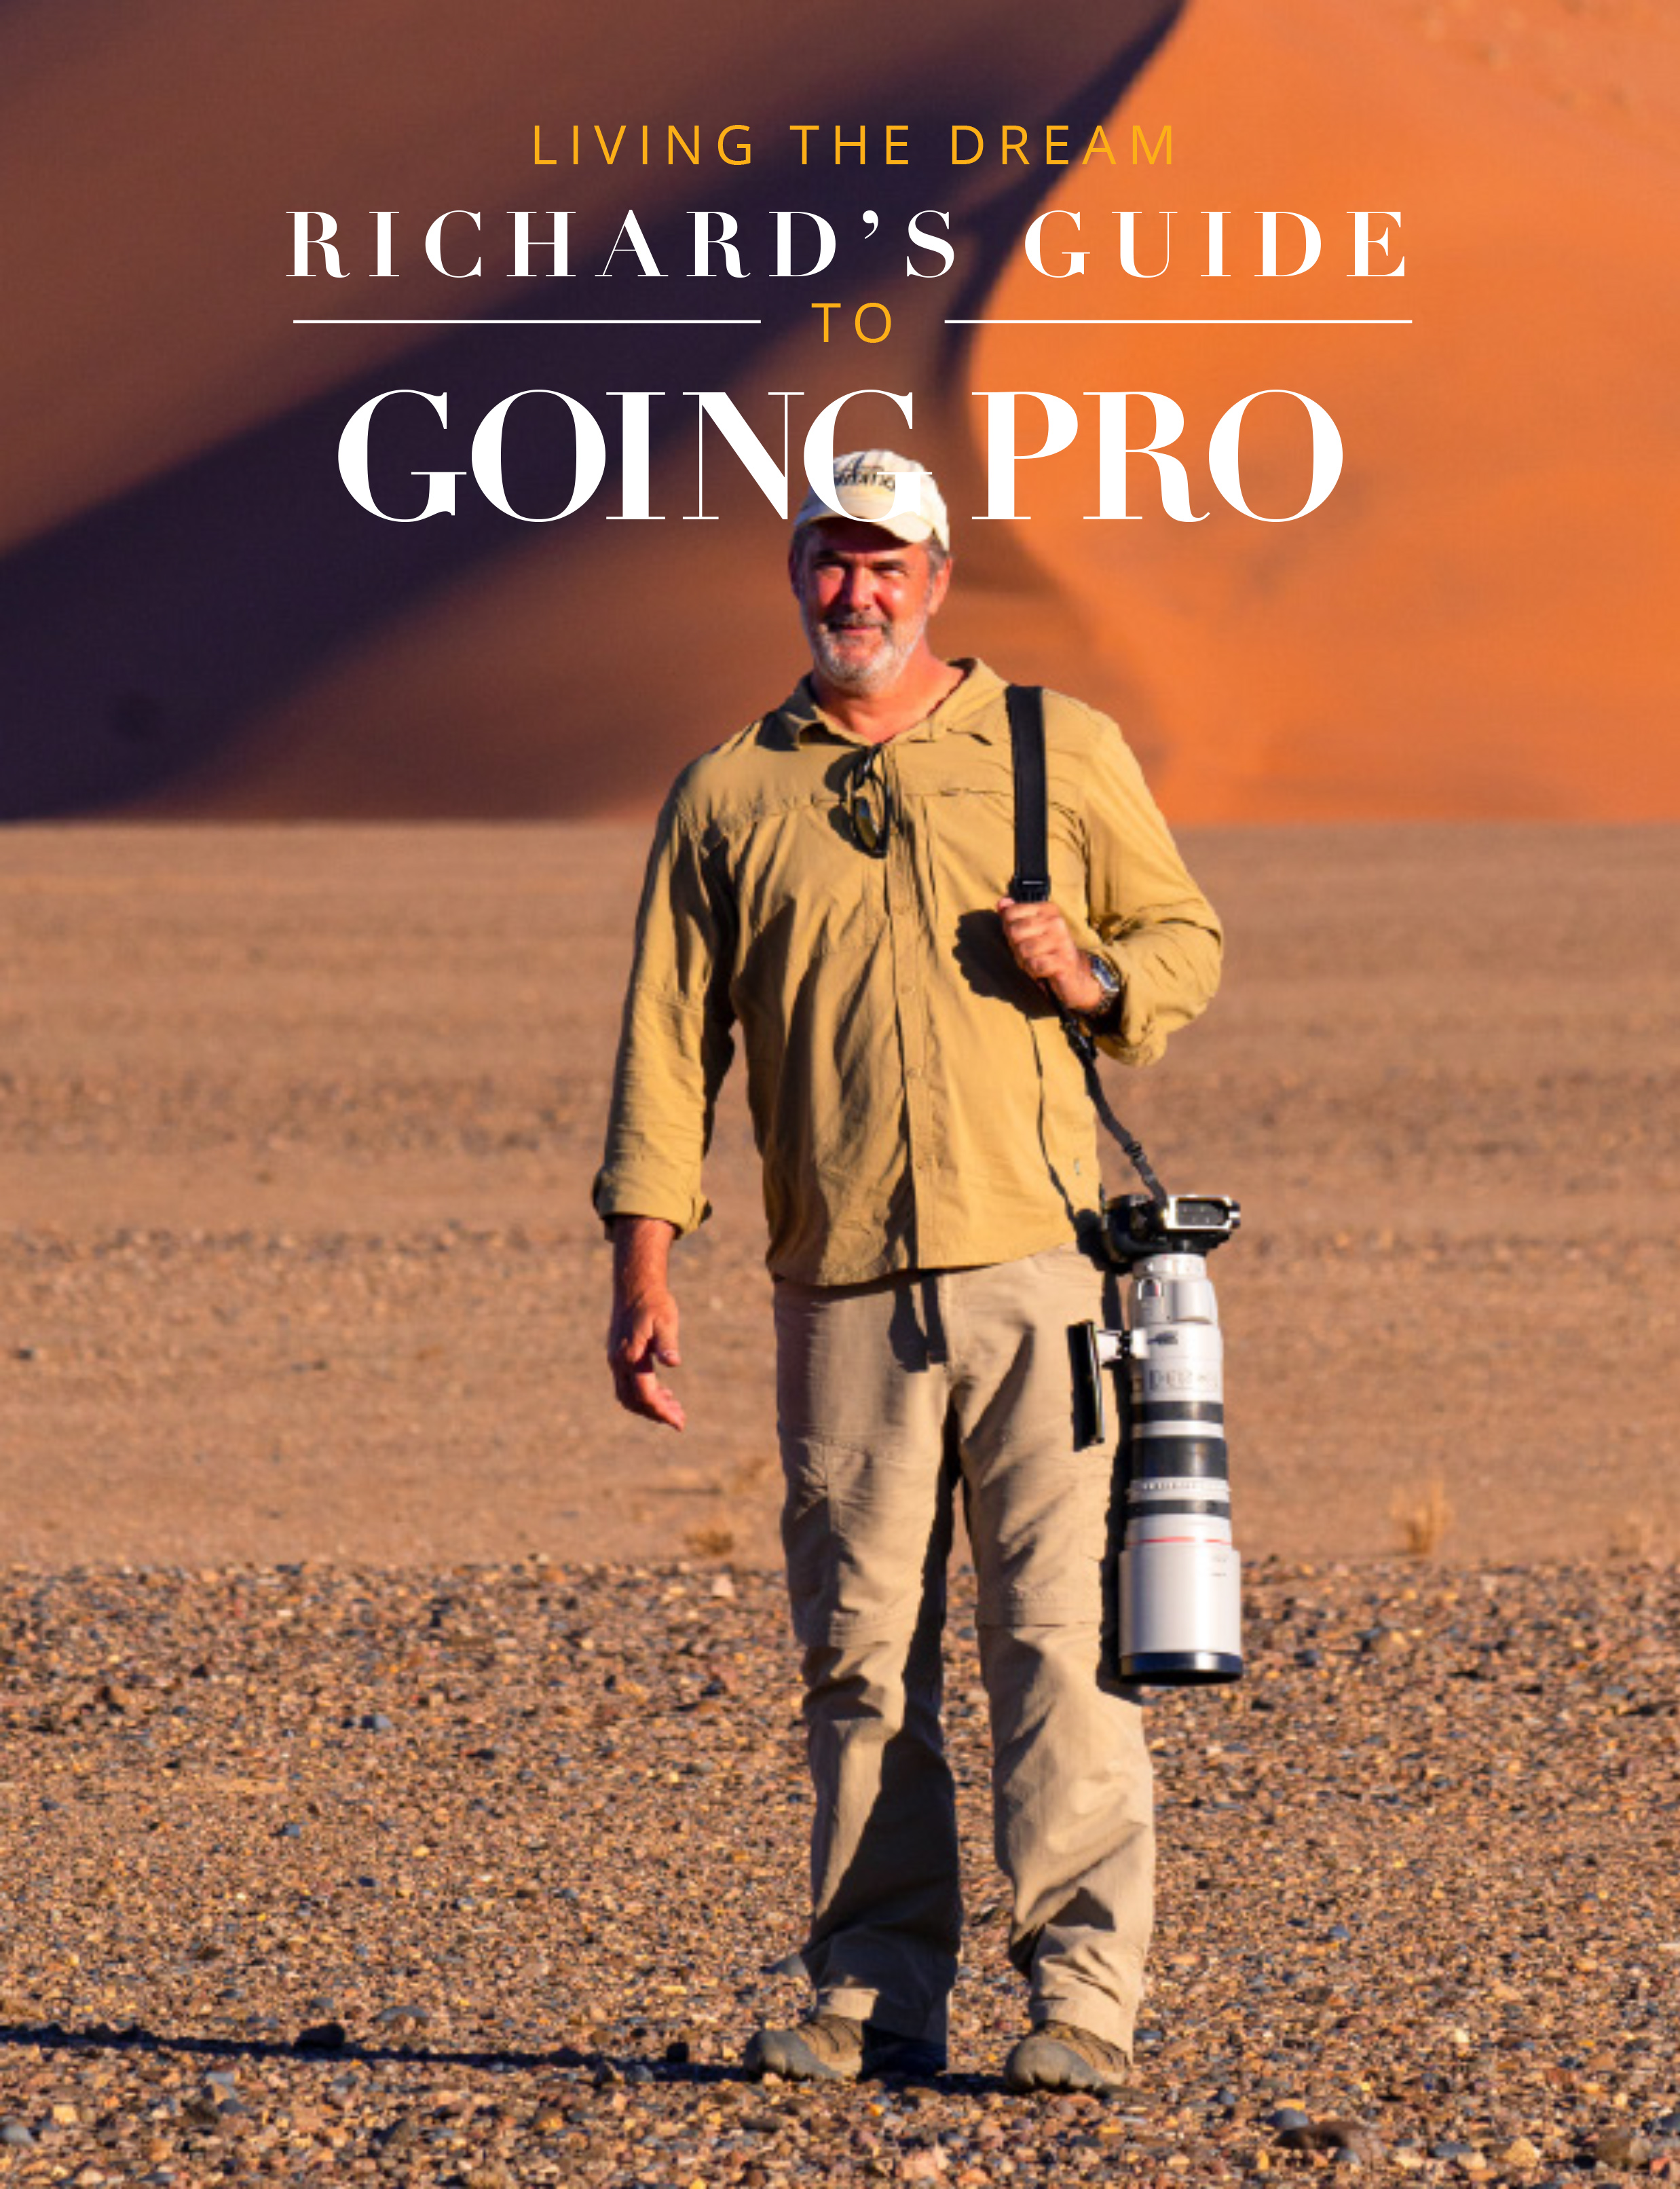 Richard's Guide to Going Pro PDF